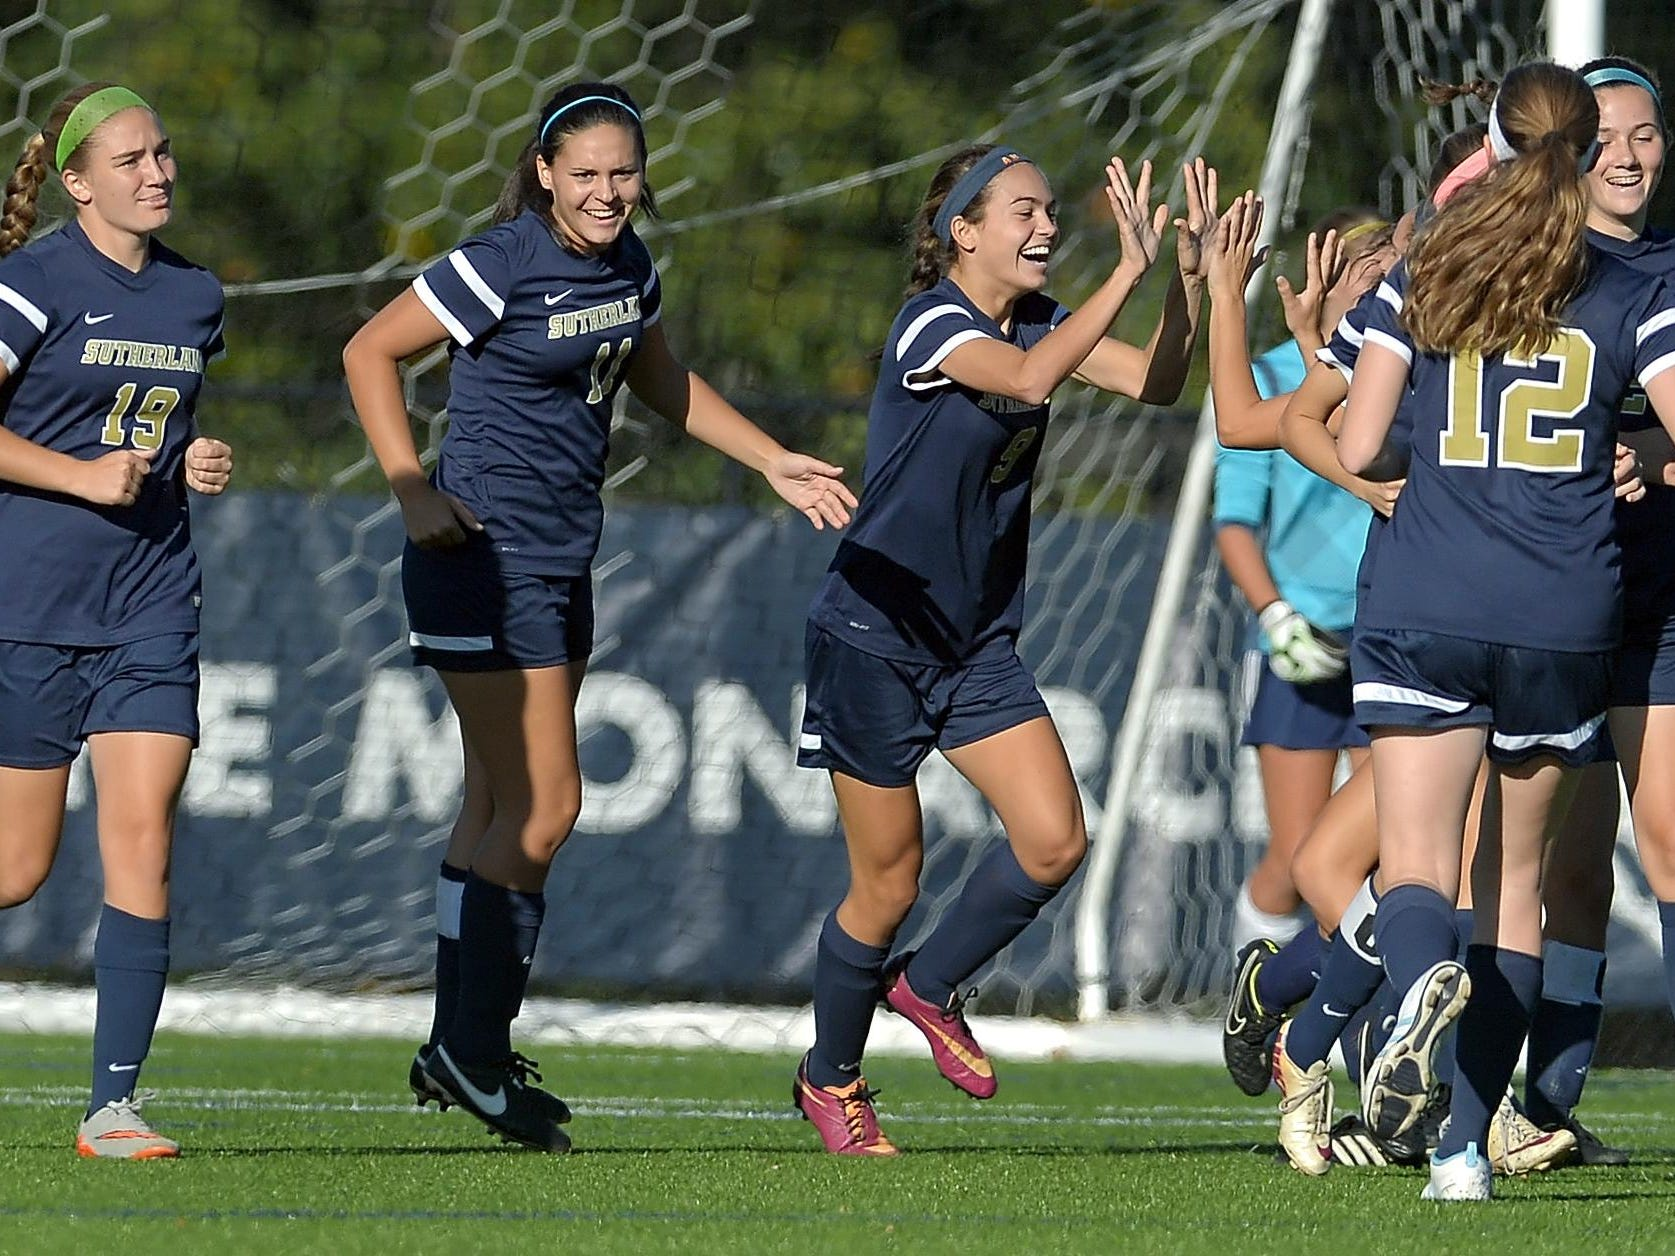 Pittsford Sutherland players celebrate their first goal.